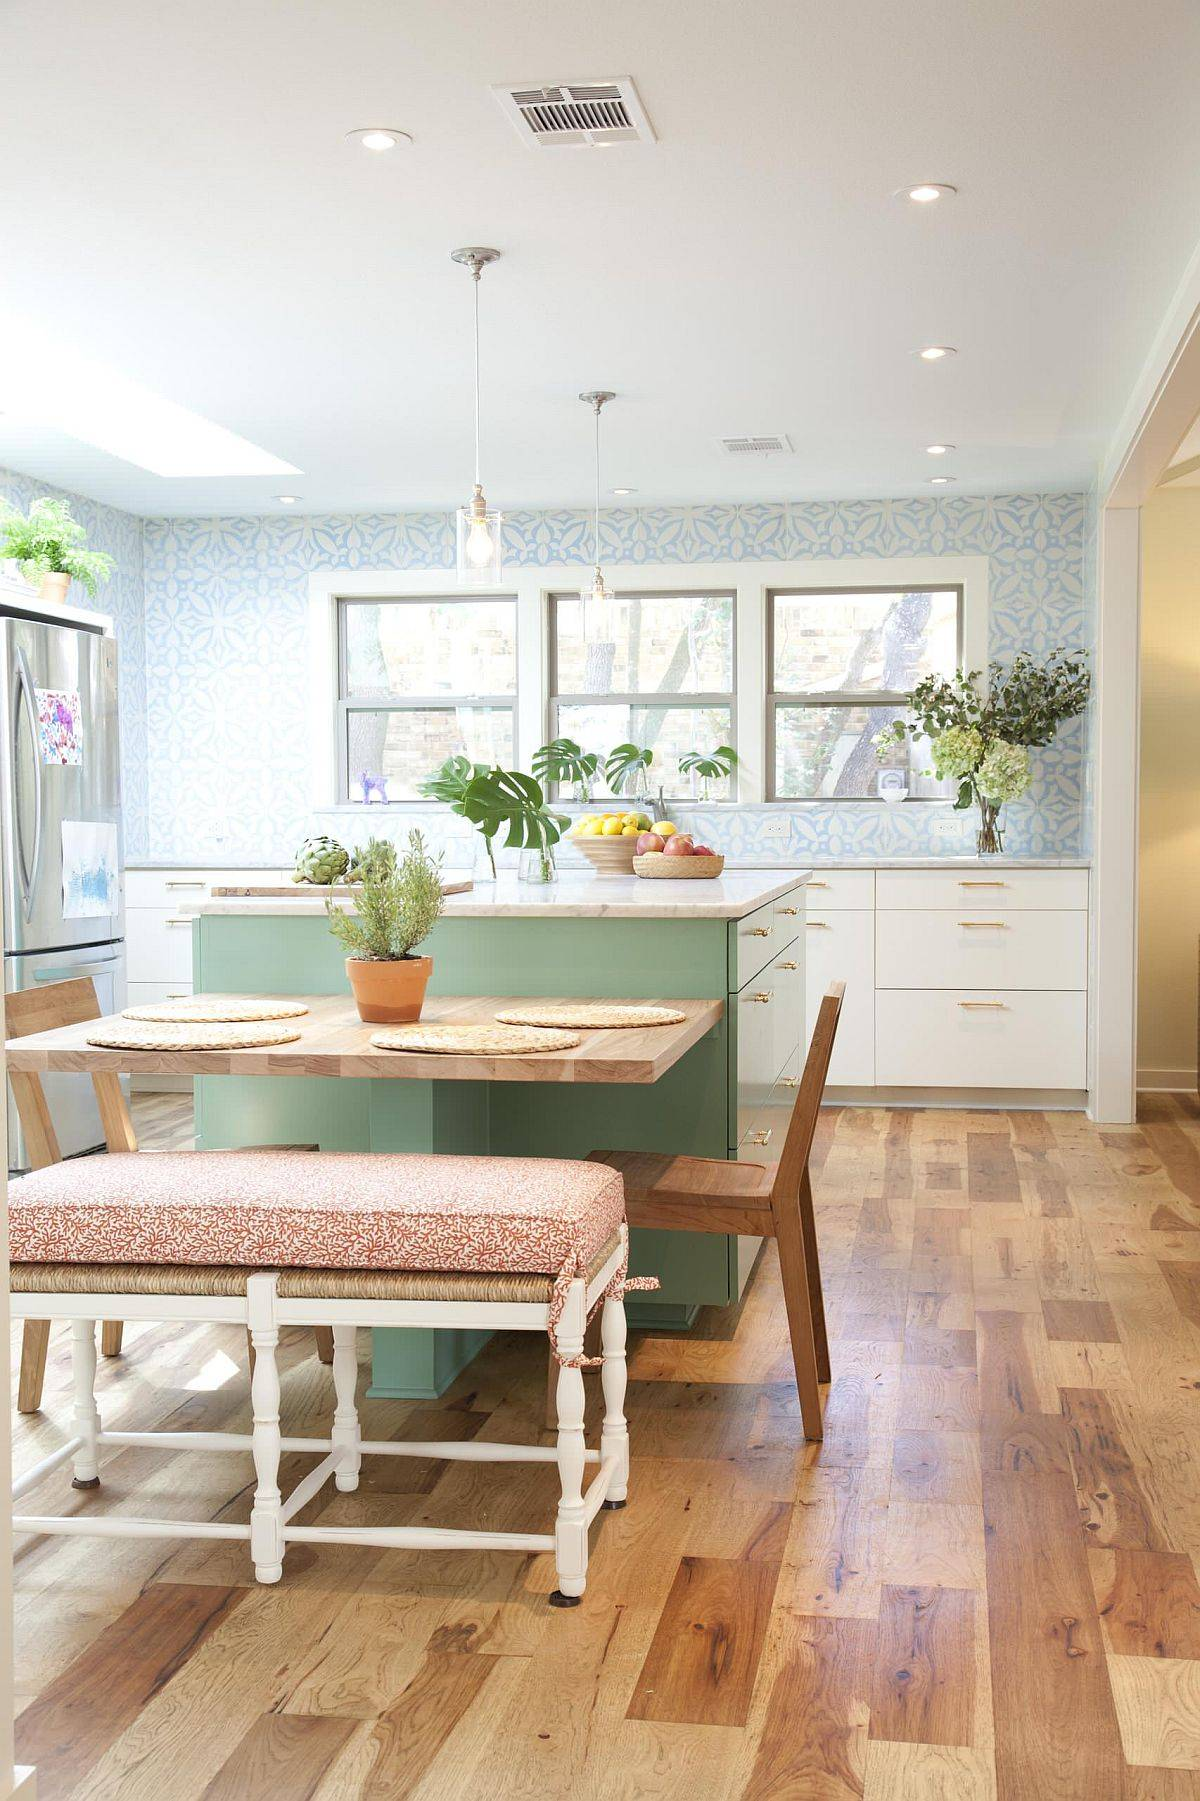 Lovely-pastel-green-adds-vibrant-charm-to-this-delightful-eat-in-kitchen-with-Mediterranean-touches-75369